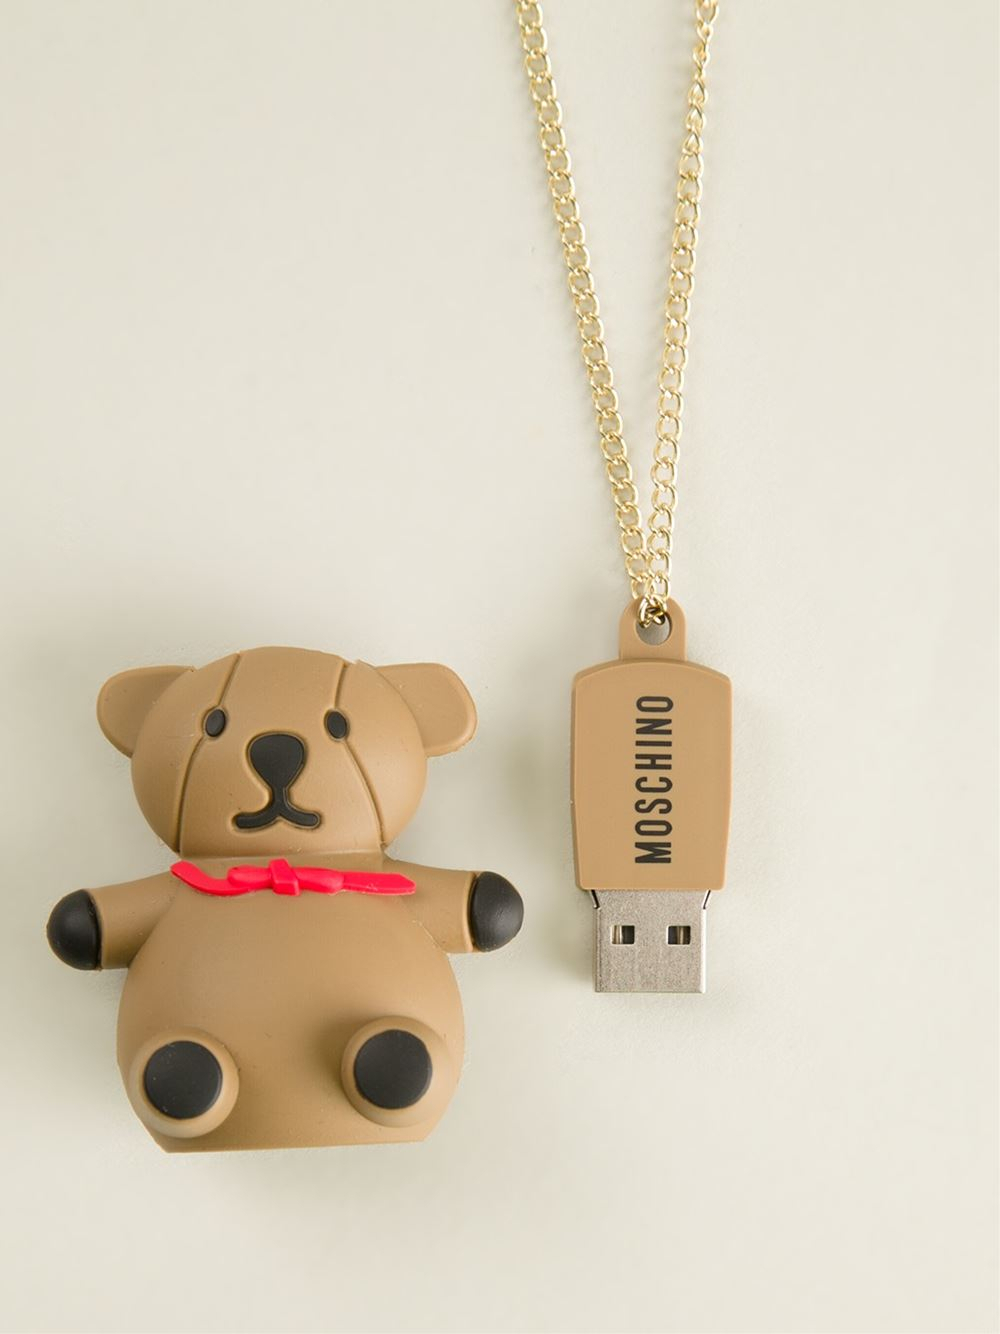 Moschino Bear Pendant Necklace In Metallic – Lyst With Regard To Newest Theodore Bear Pendant Necklaces (Gallery 15 of 25)